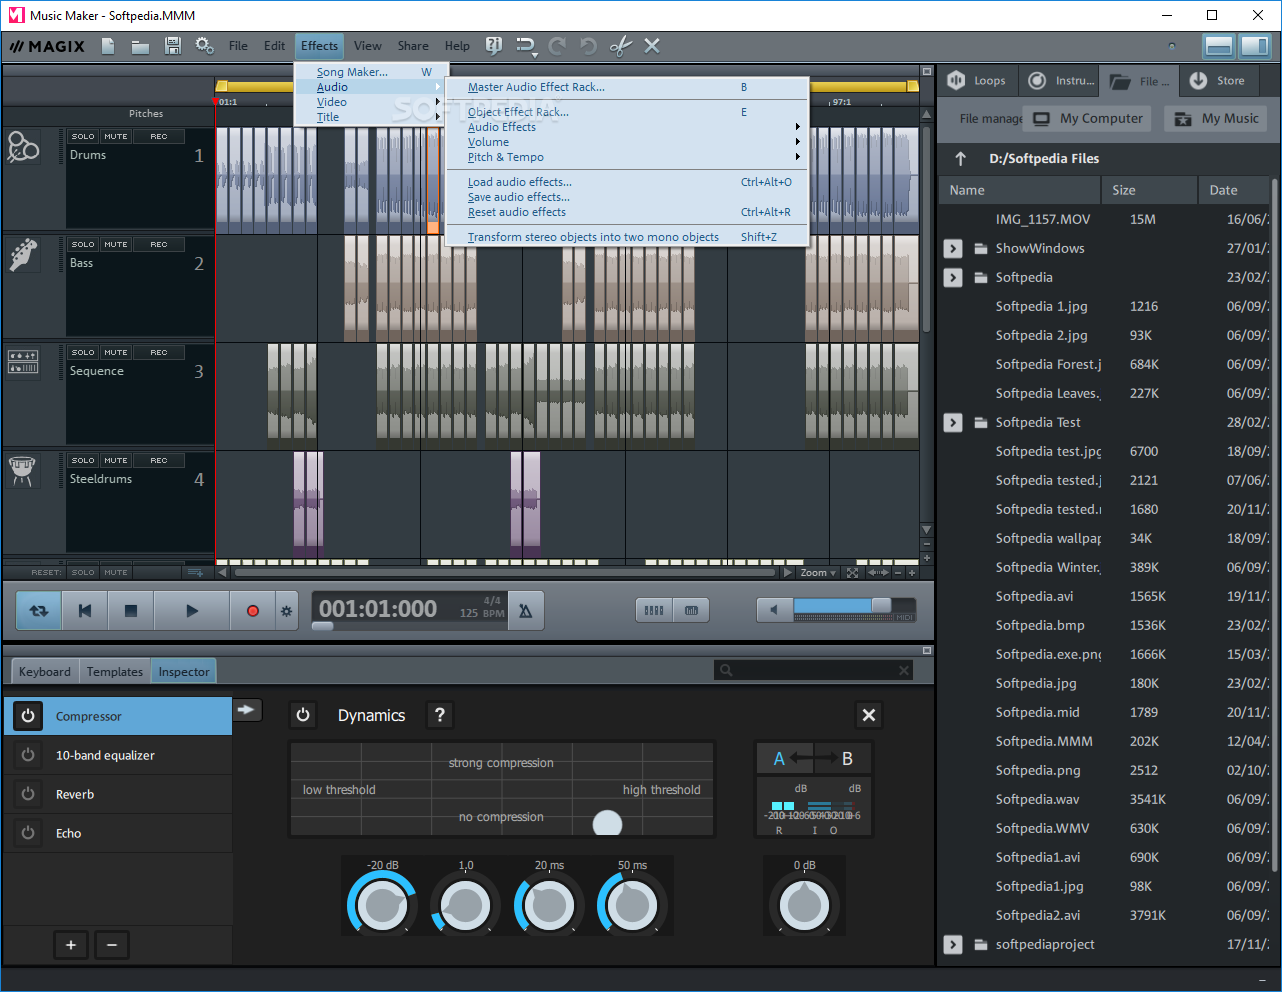 magix music maker 27.0.0.16 crack